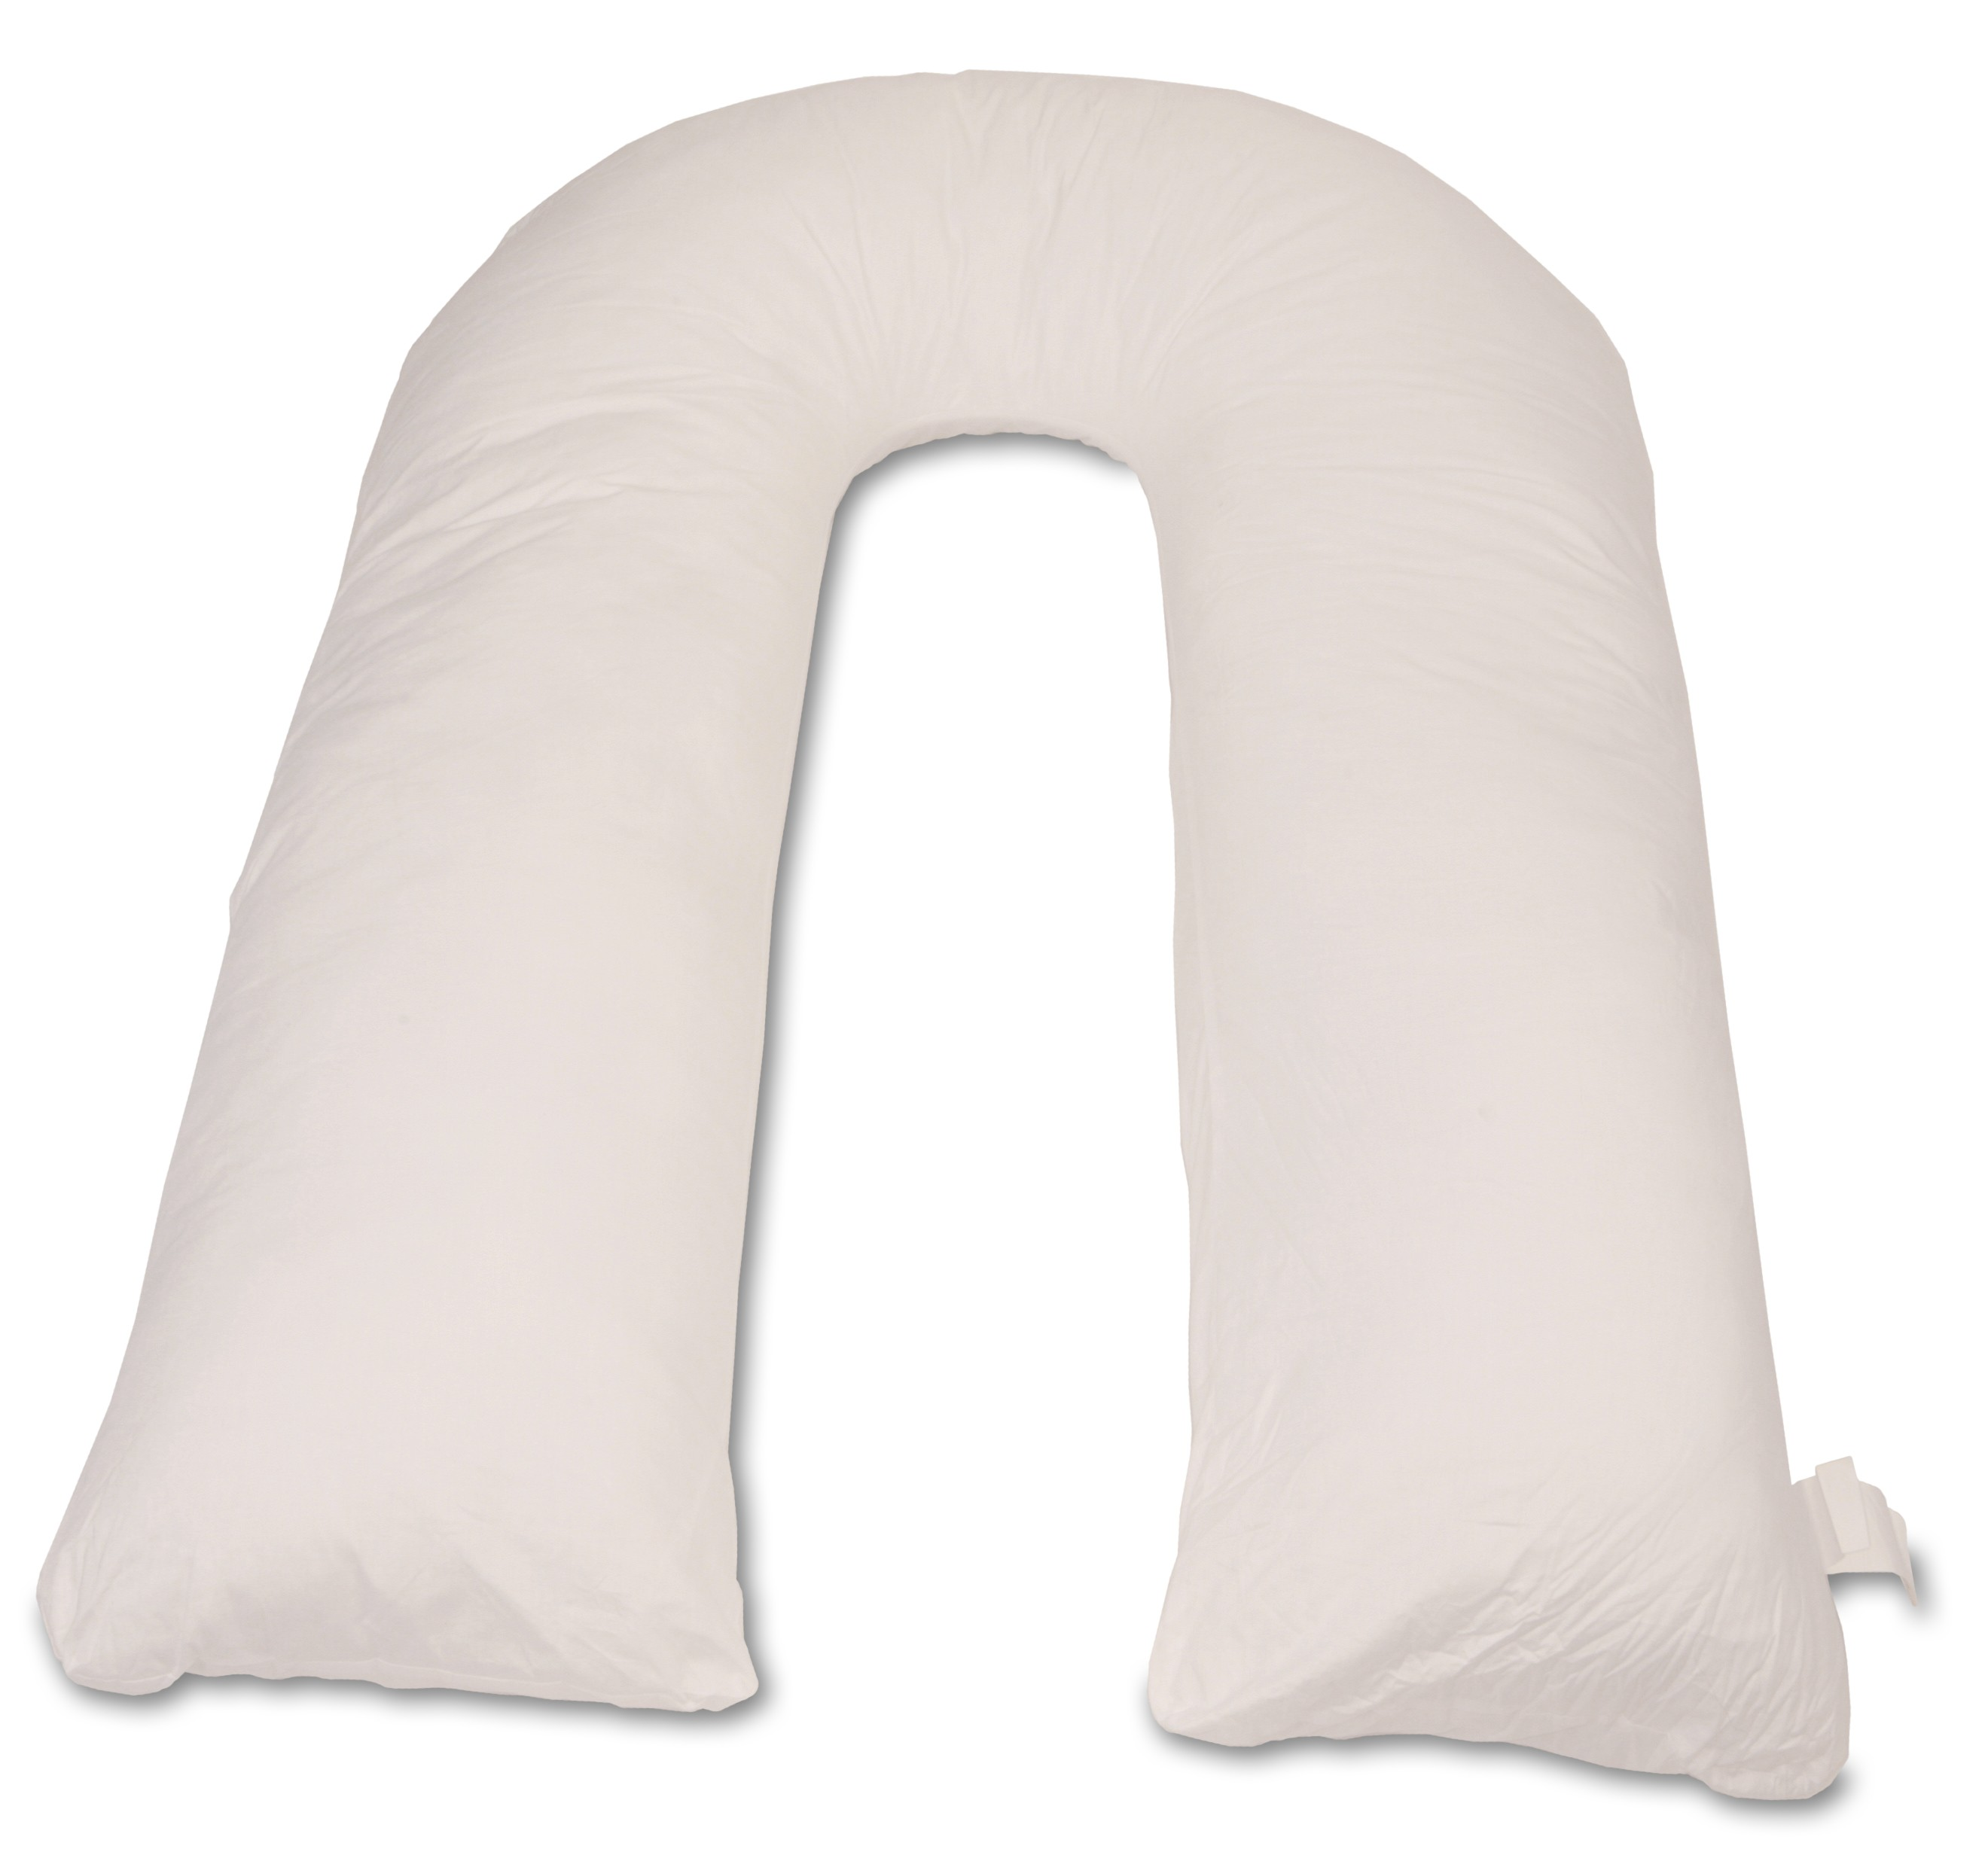 DeluxeComfort.Deluxe Comfort Perfect U Full Body Pillow